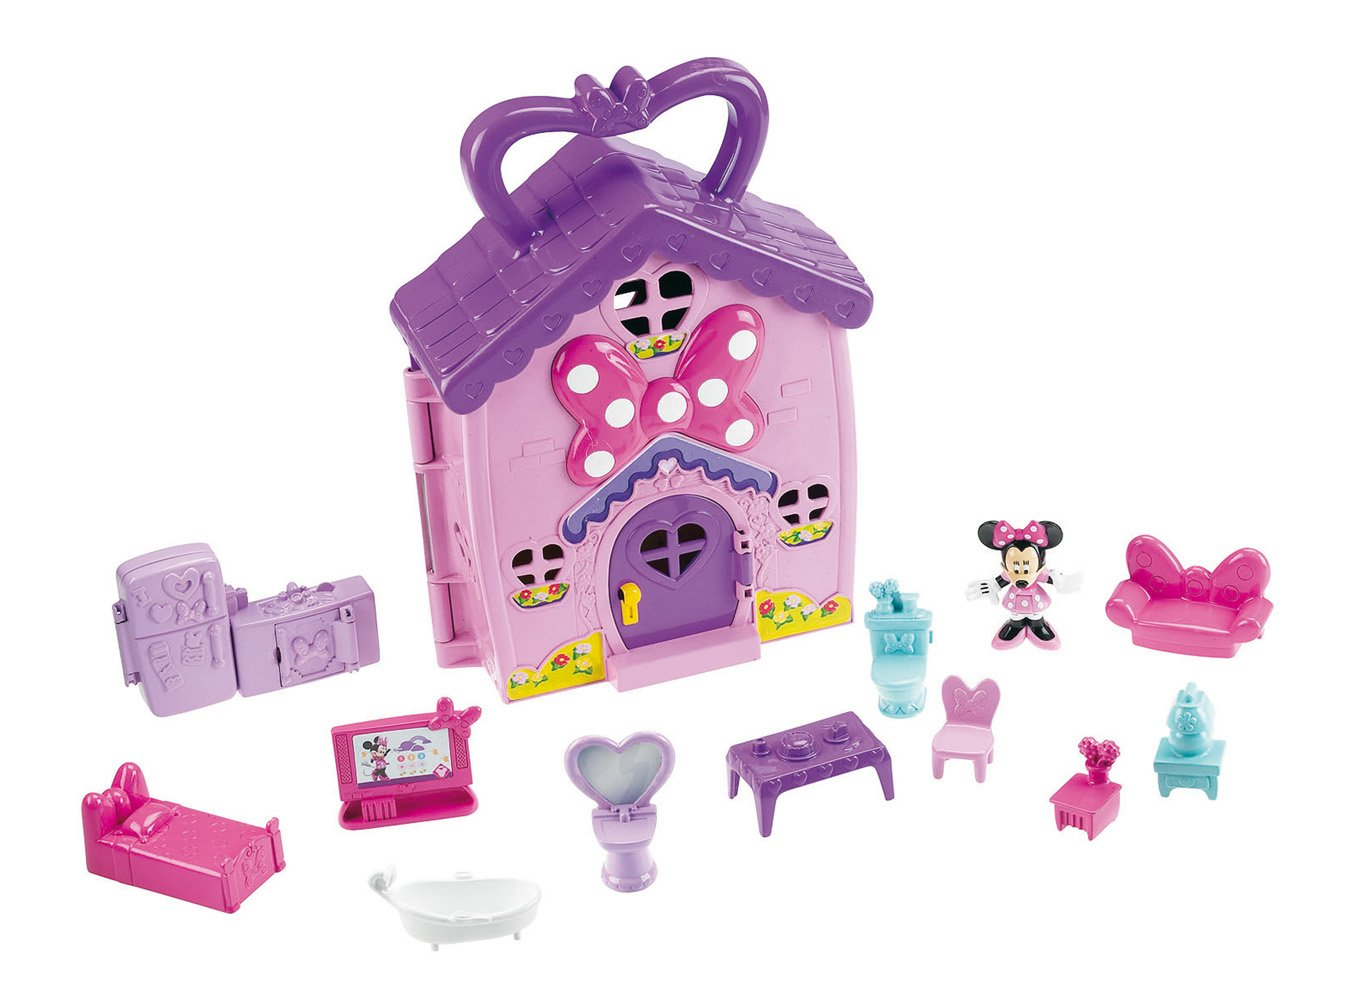 Amazon.com: Mickey Mouse Clubhouse Minnies House Playset: Toys & Games